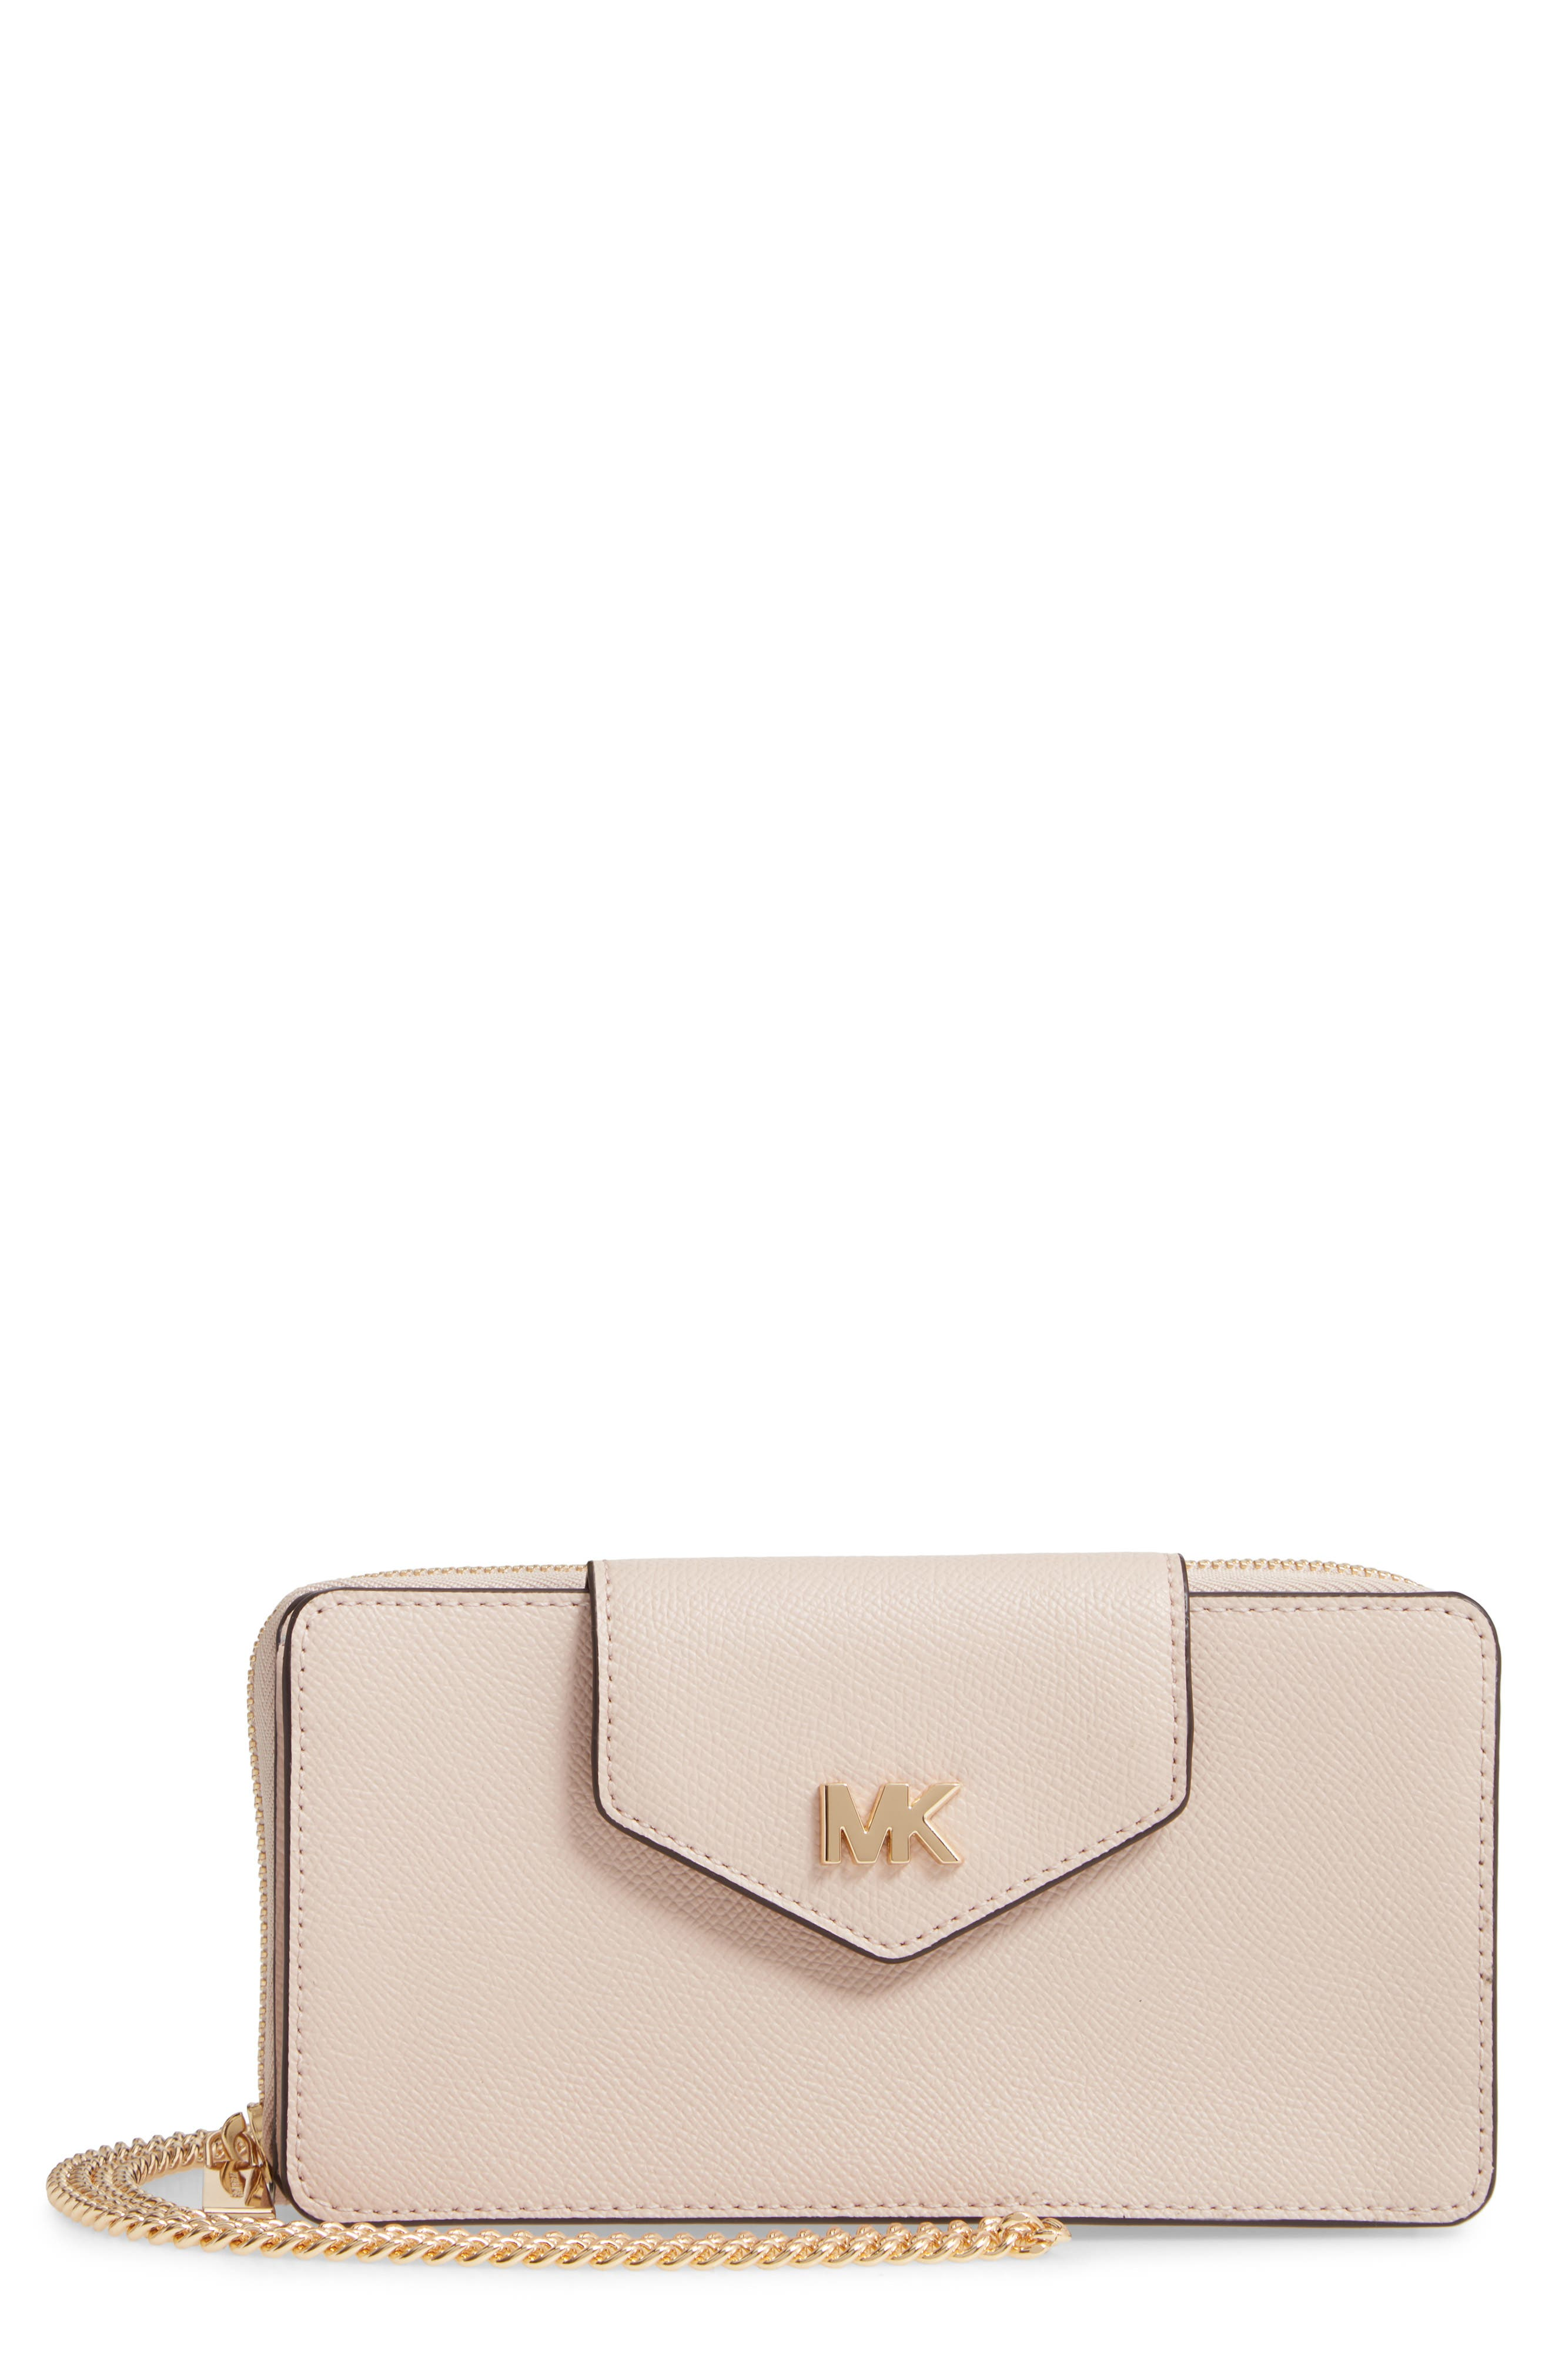 4db20f5fd46e MICHAEL Michael Kors Wallets & Card Cases for Women | Nordstrom